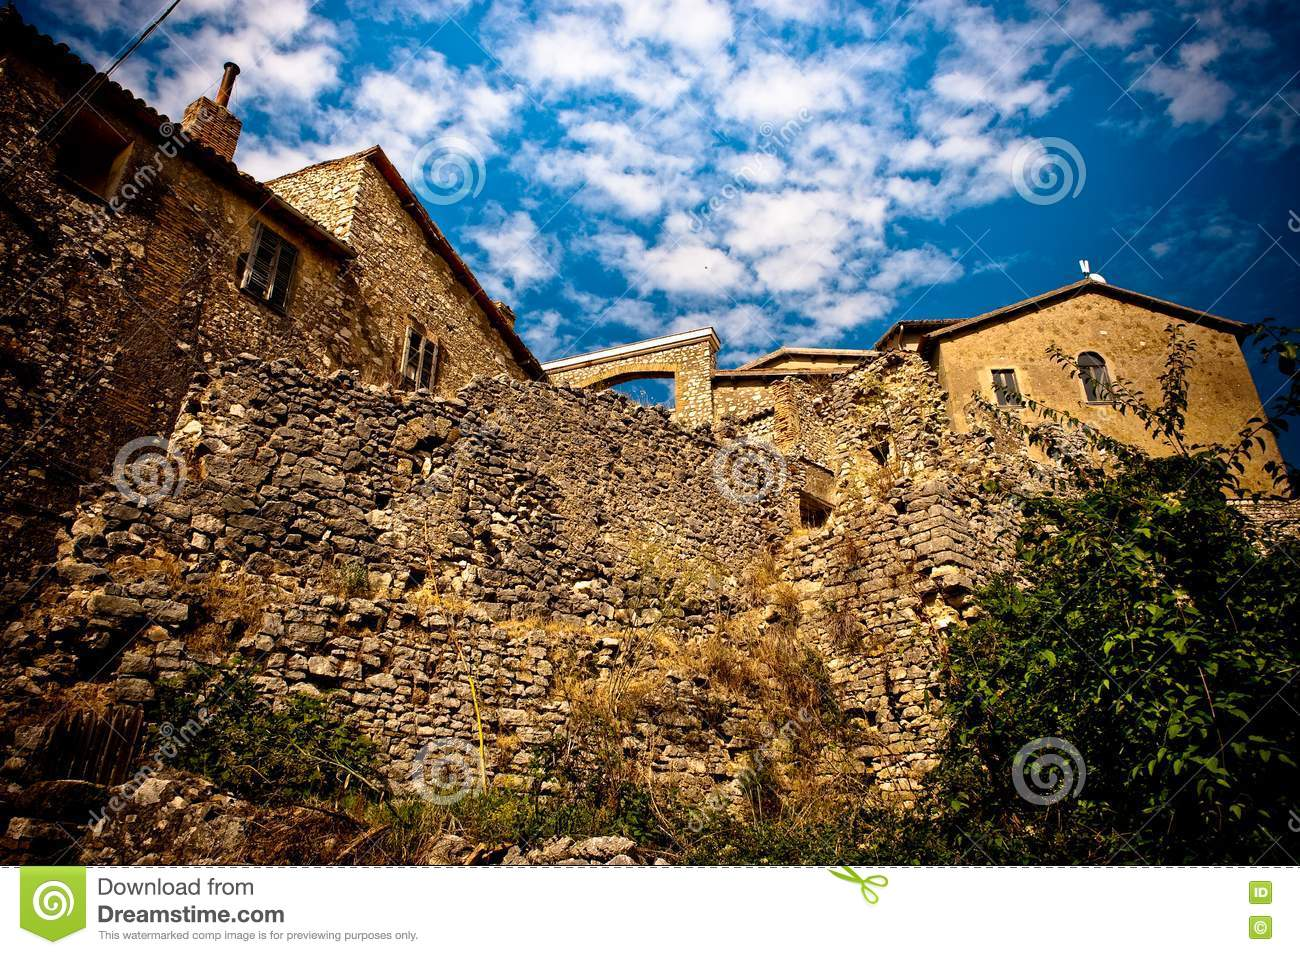 - view-romantic-old-italian-stone-building-15621157